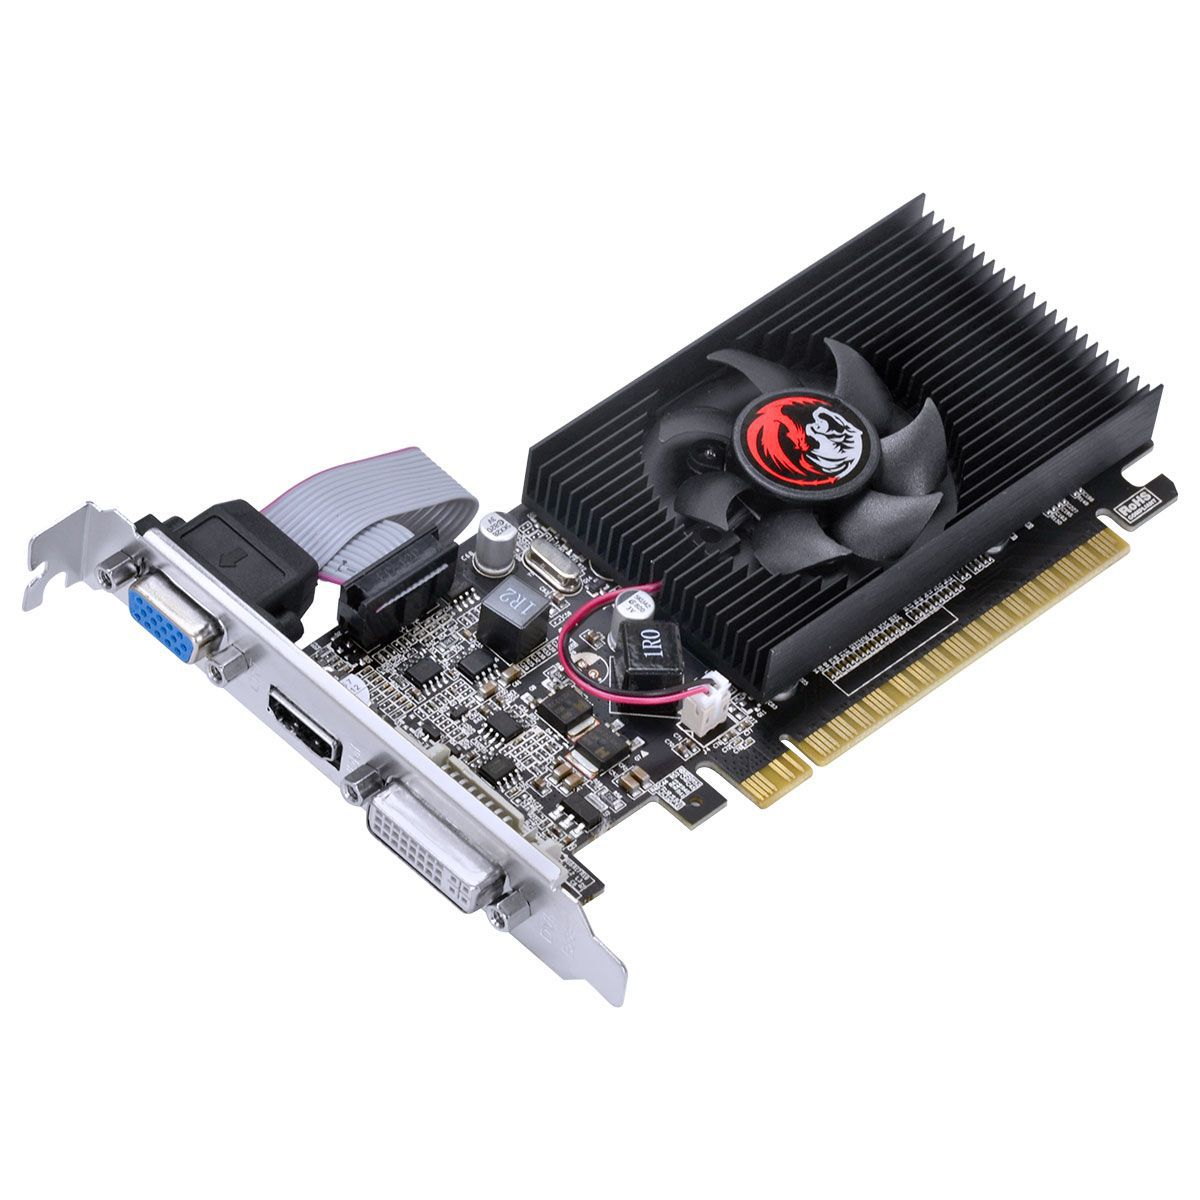 Placa de Vídeo GeForce G210 1GB DDR3 64 Bits com Kit (Low Profile Incluso) PA210G6401D3LP - Pcyes